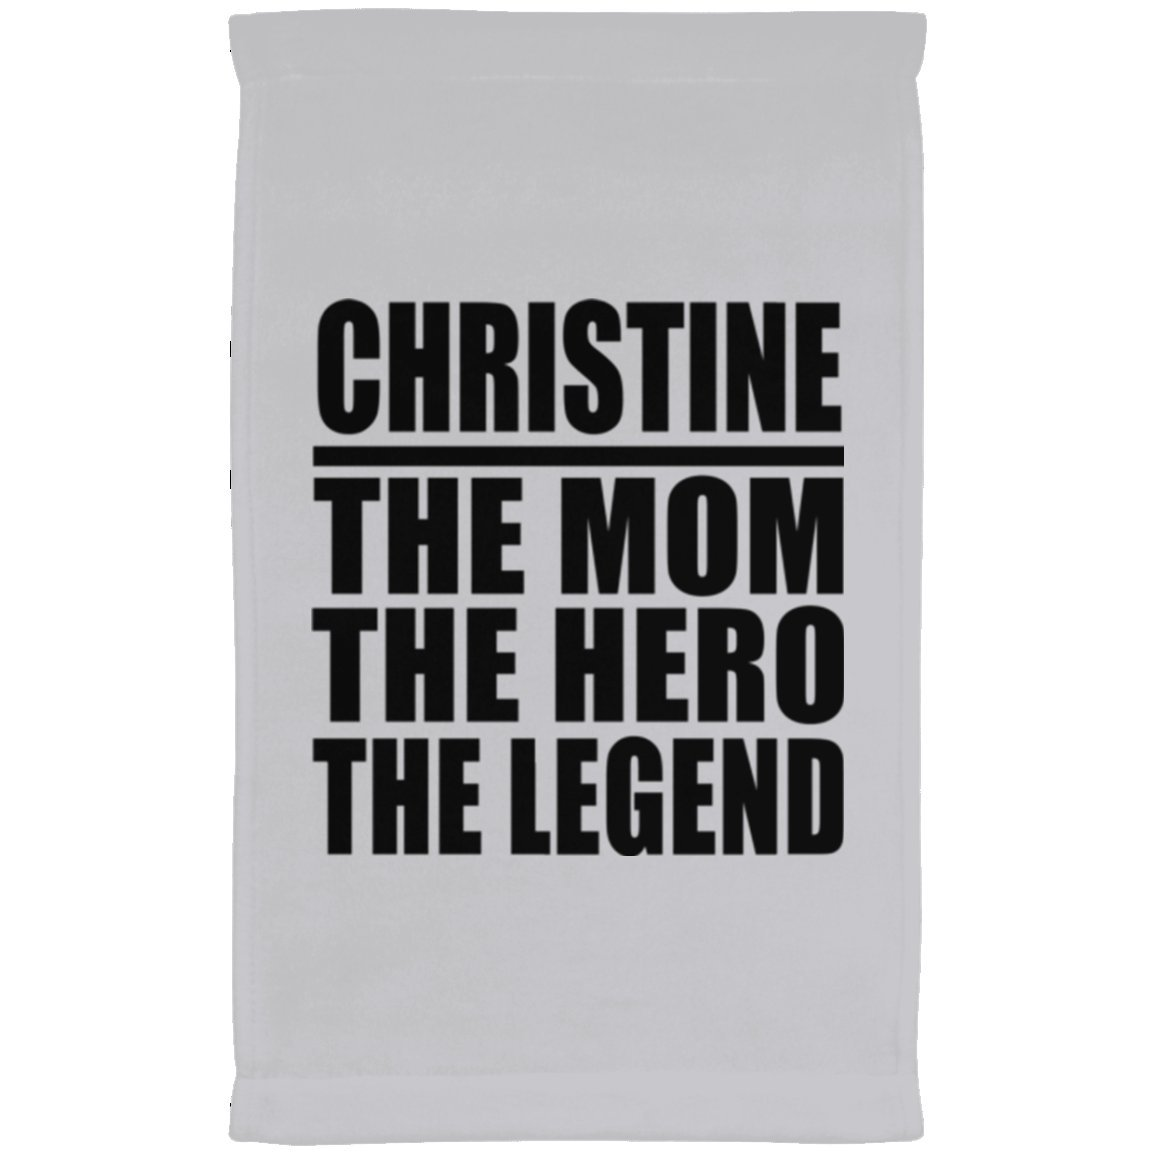 Designsify Mom Towel, Christine The Mom The Hero The Legend - Kitchen Towel, Microfiber Velour Towel, Best Gift with Her Name for Mother, Mum, Parent, Wife from Daughter, Son, Kid, Child, Husband